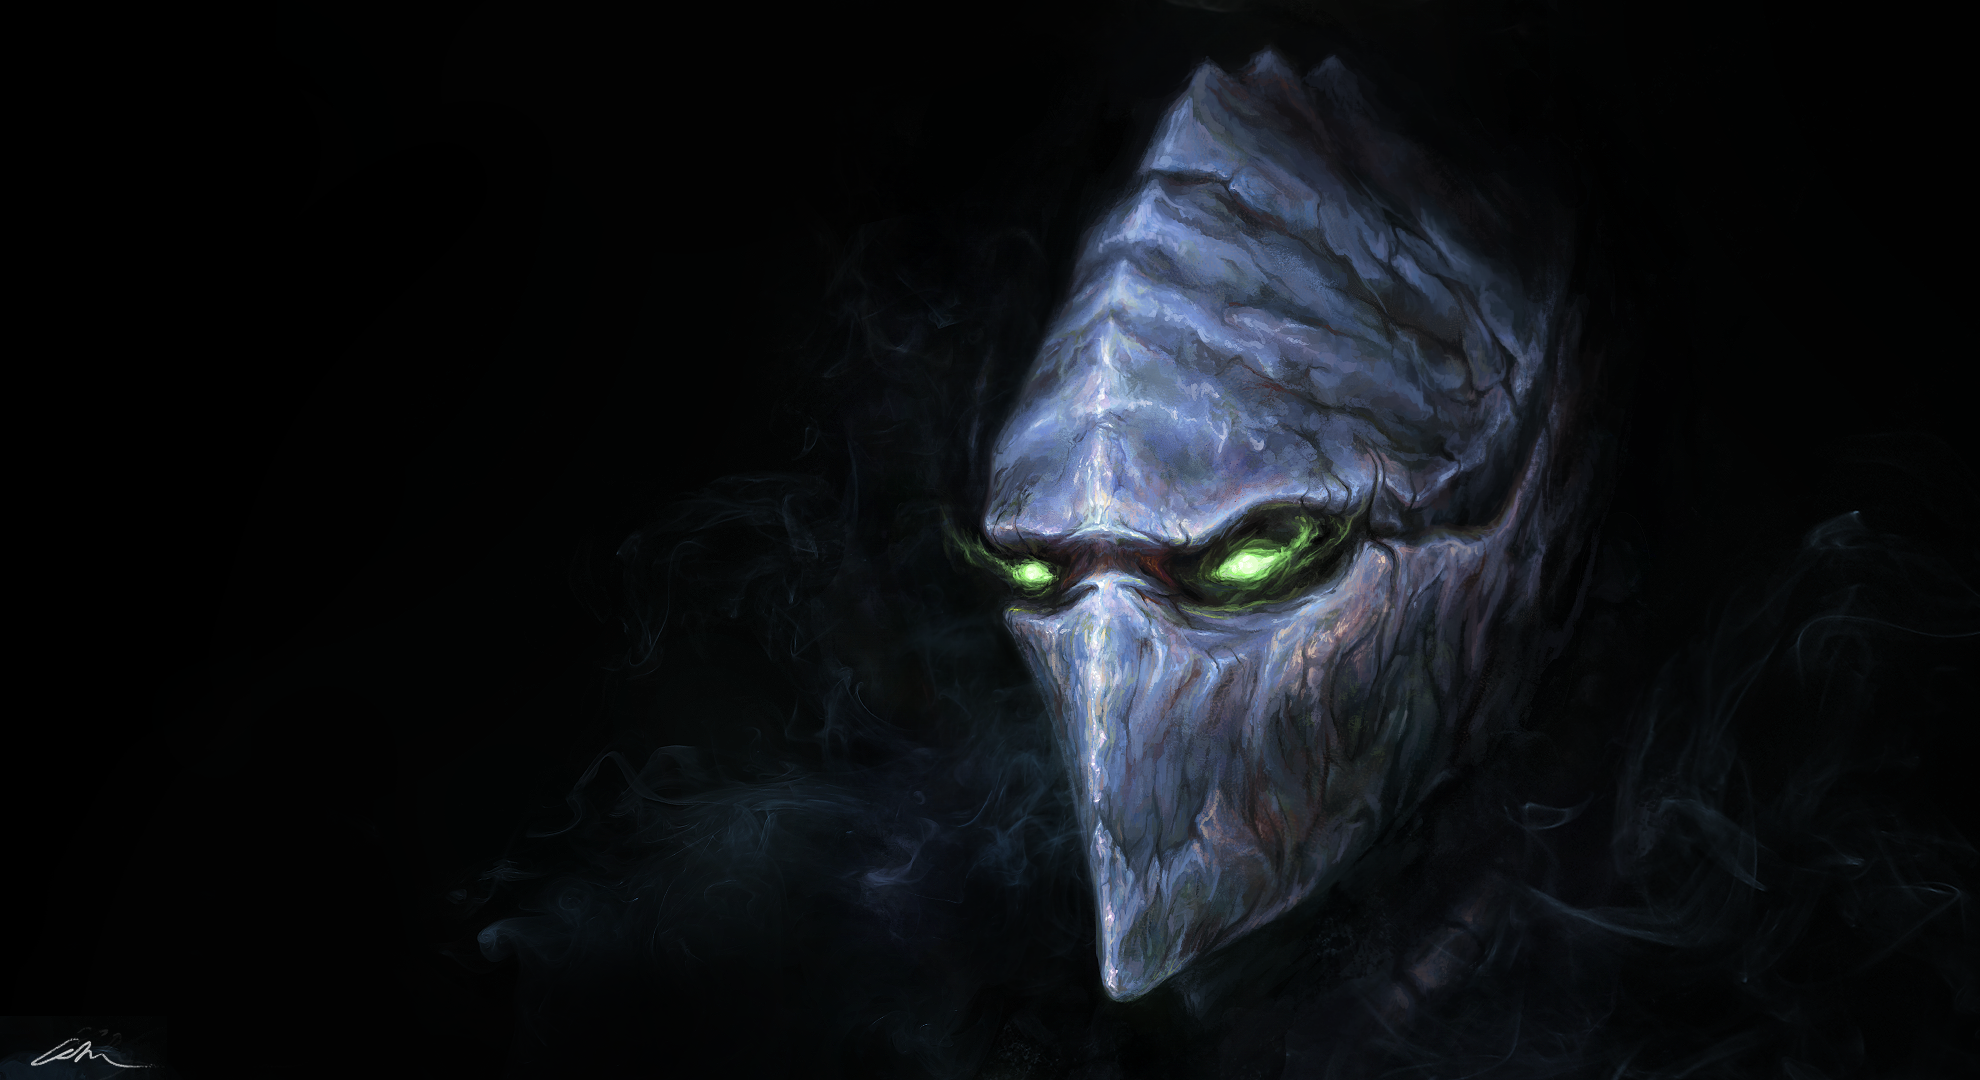 Dark Templar - Wallpaper version by oliverryanart